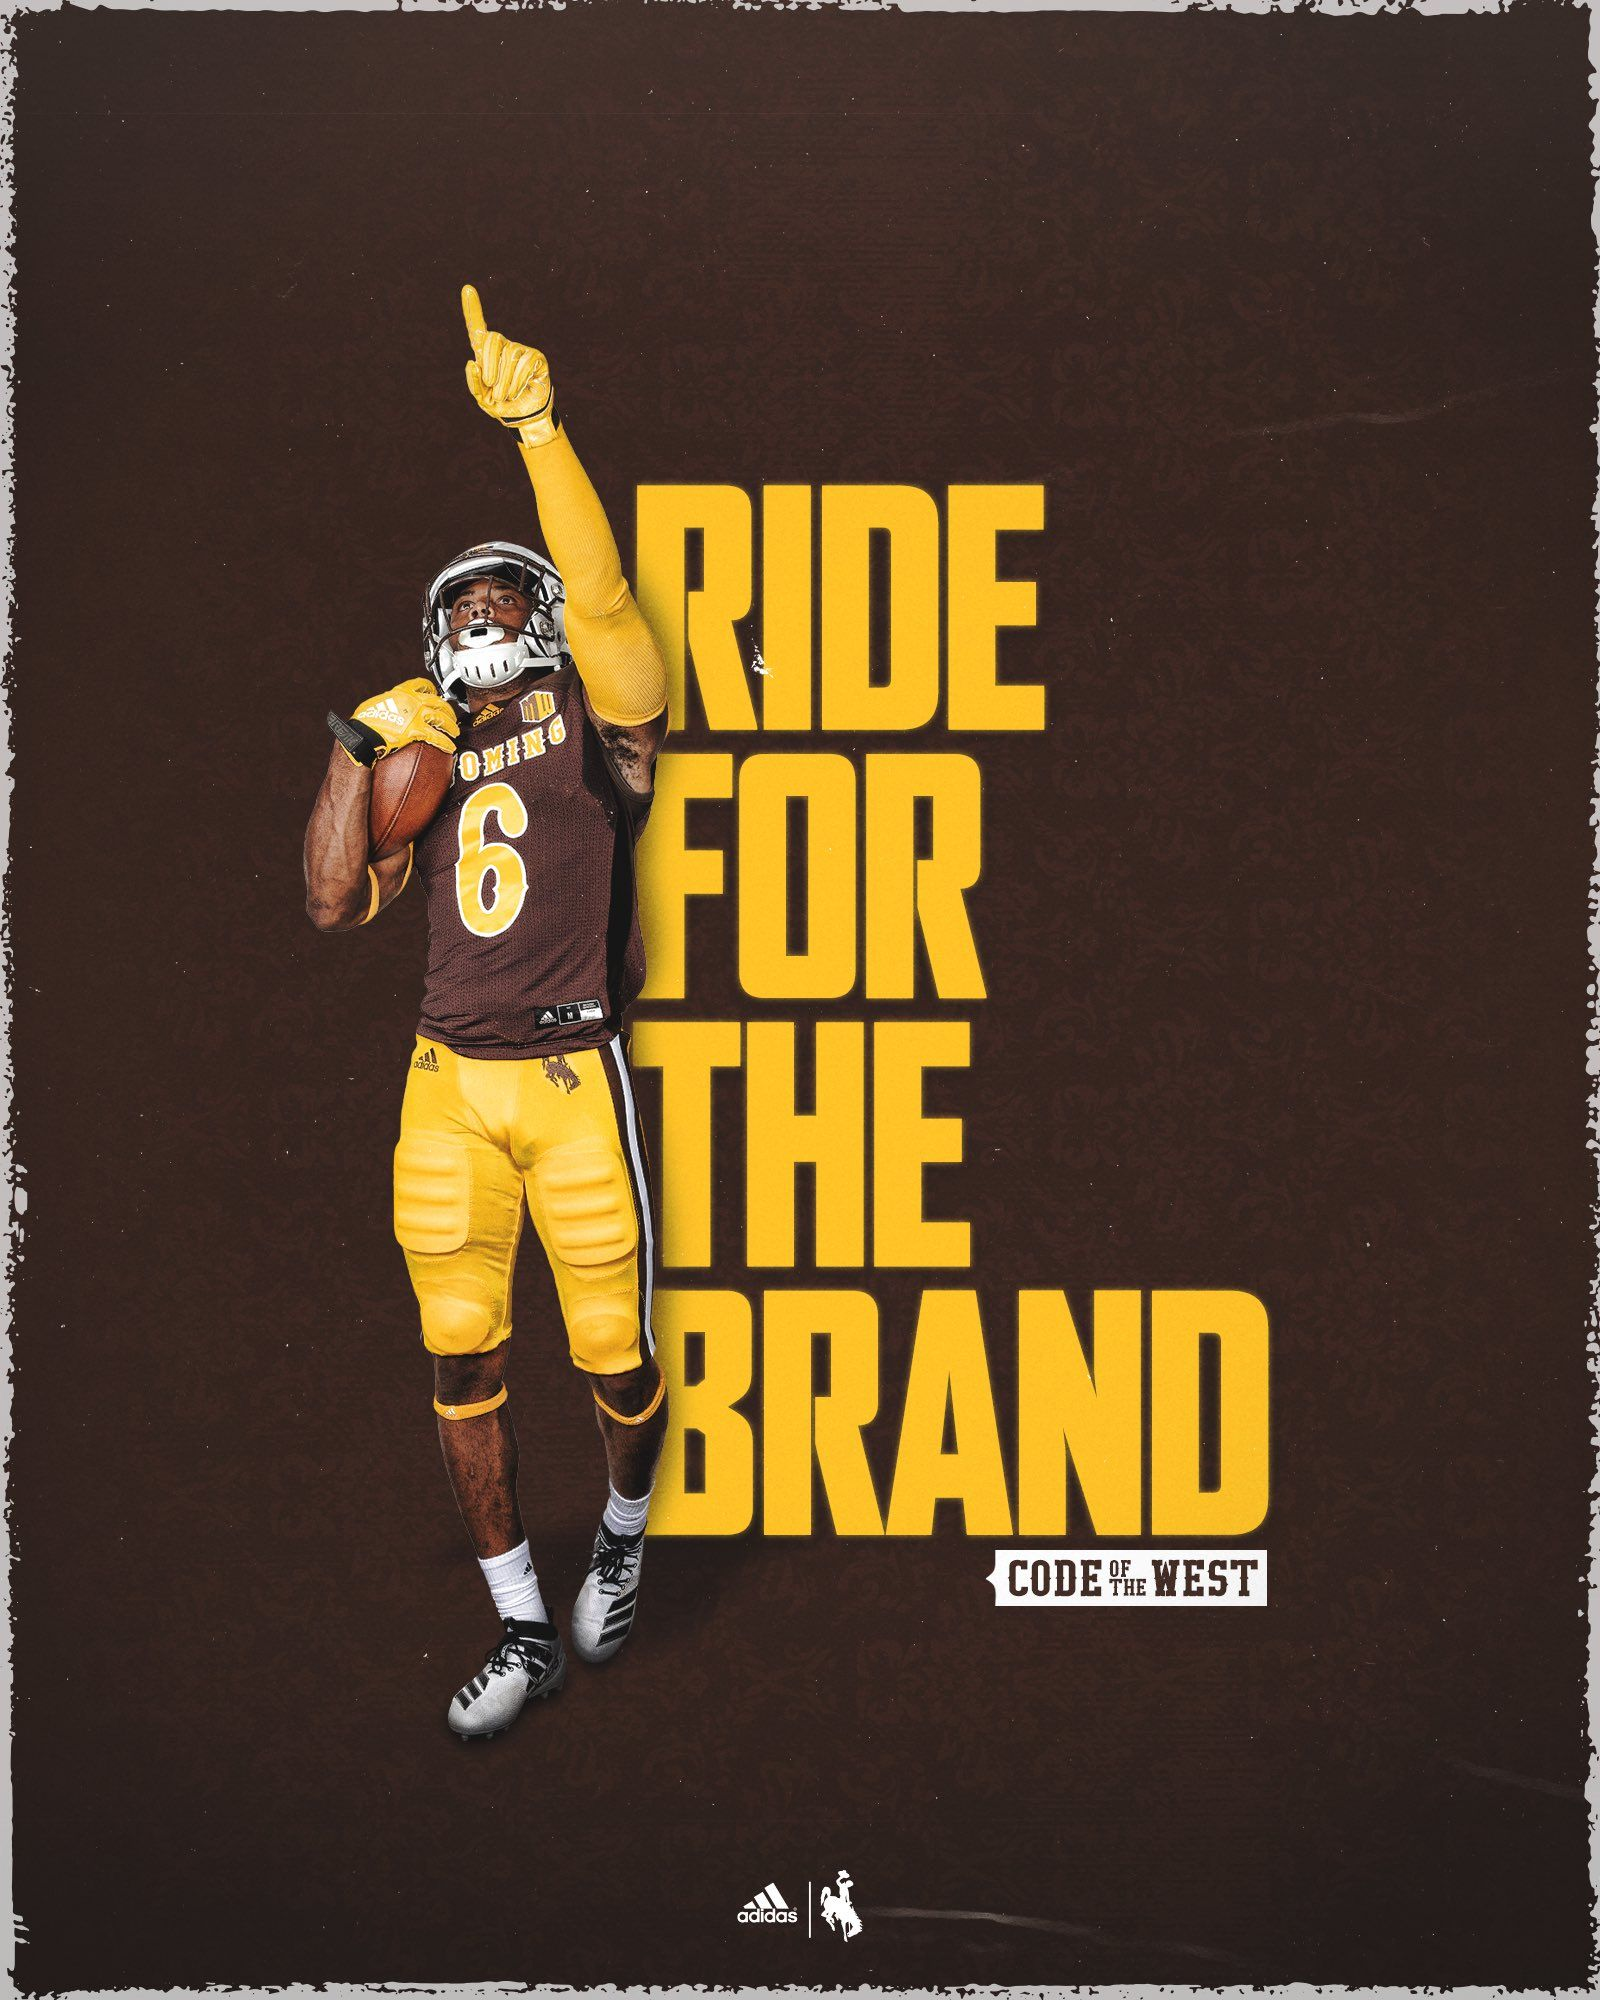 Wyoming In 2020 Sports Design Inspiration Sports Graphic Design Football Design